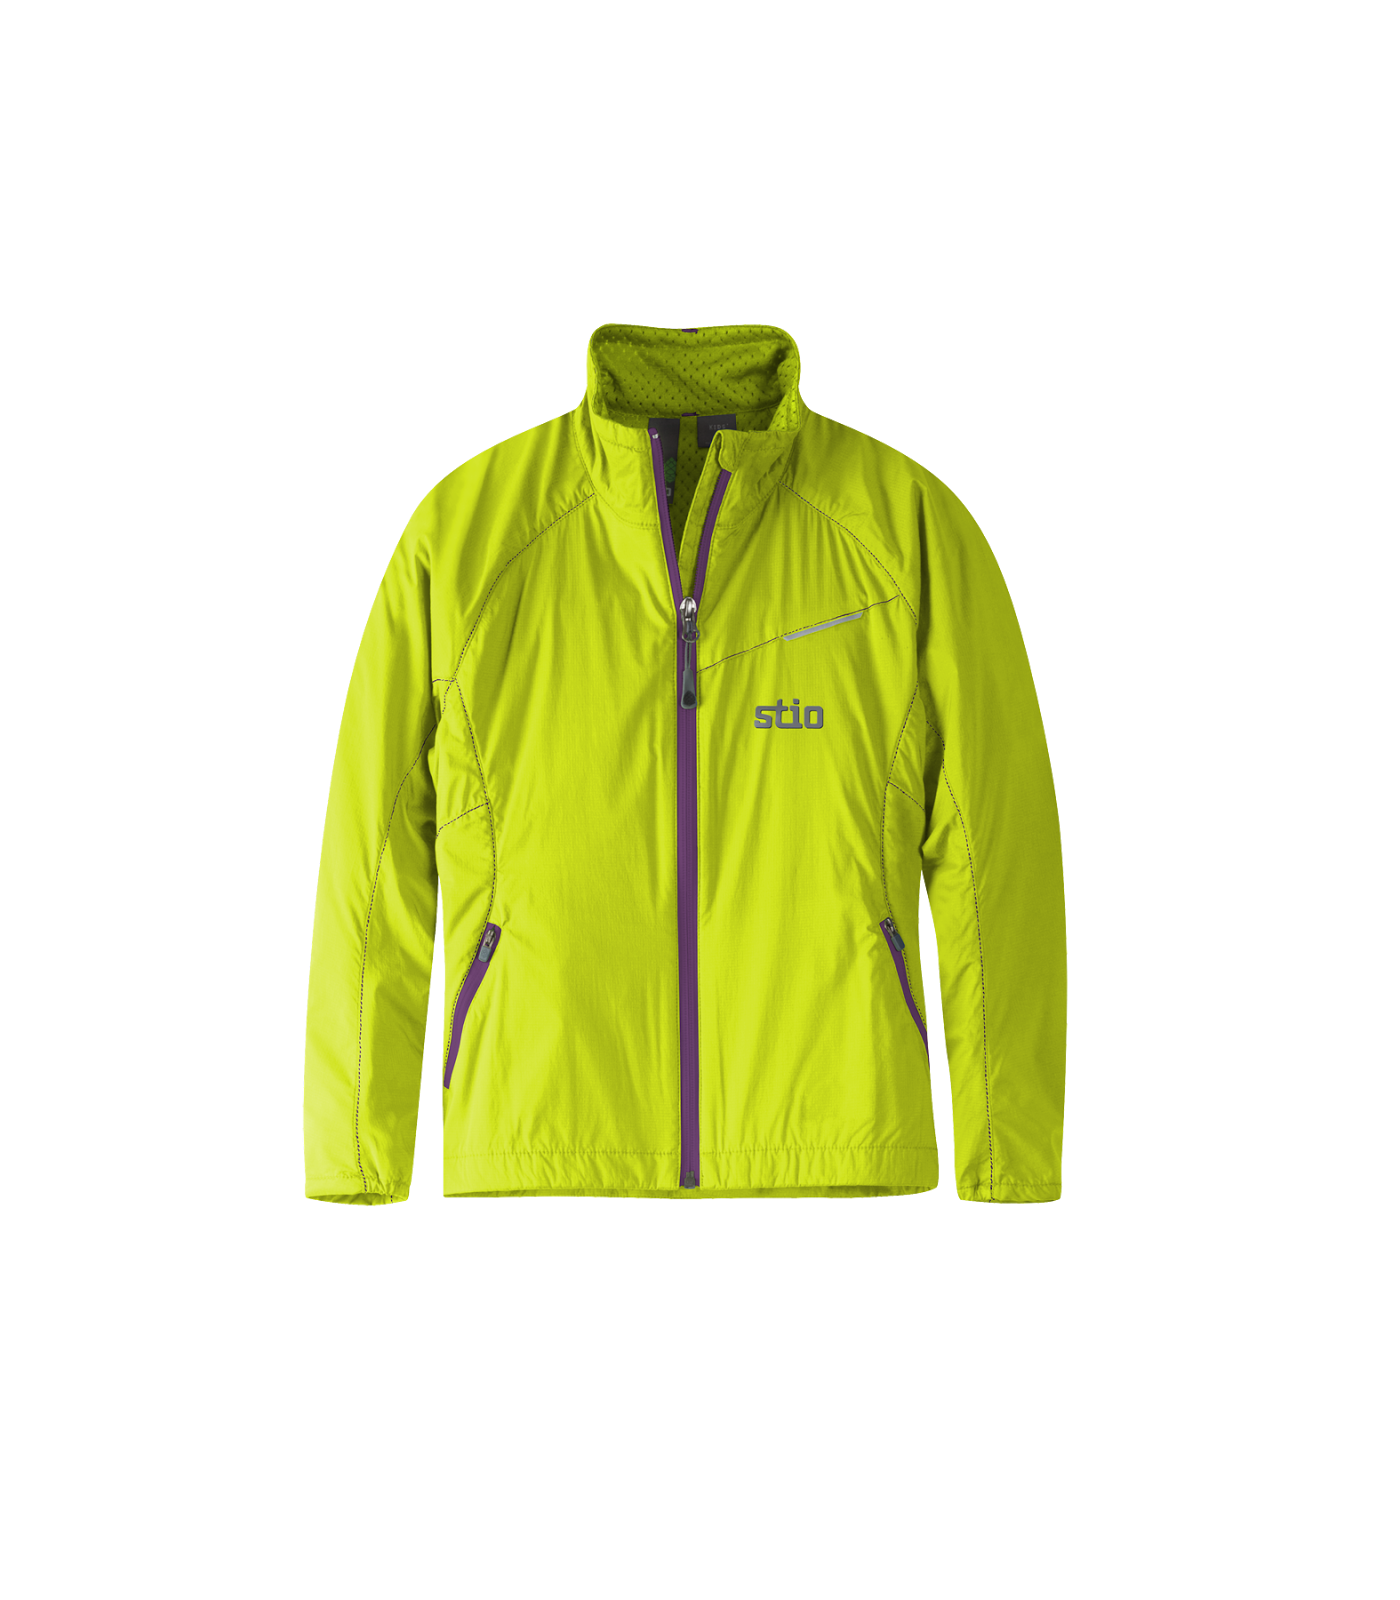 Back To School Must Have   The Kids First Light Jacket From Stio